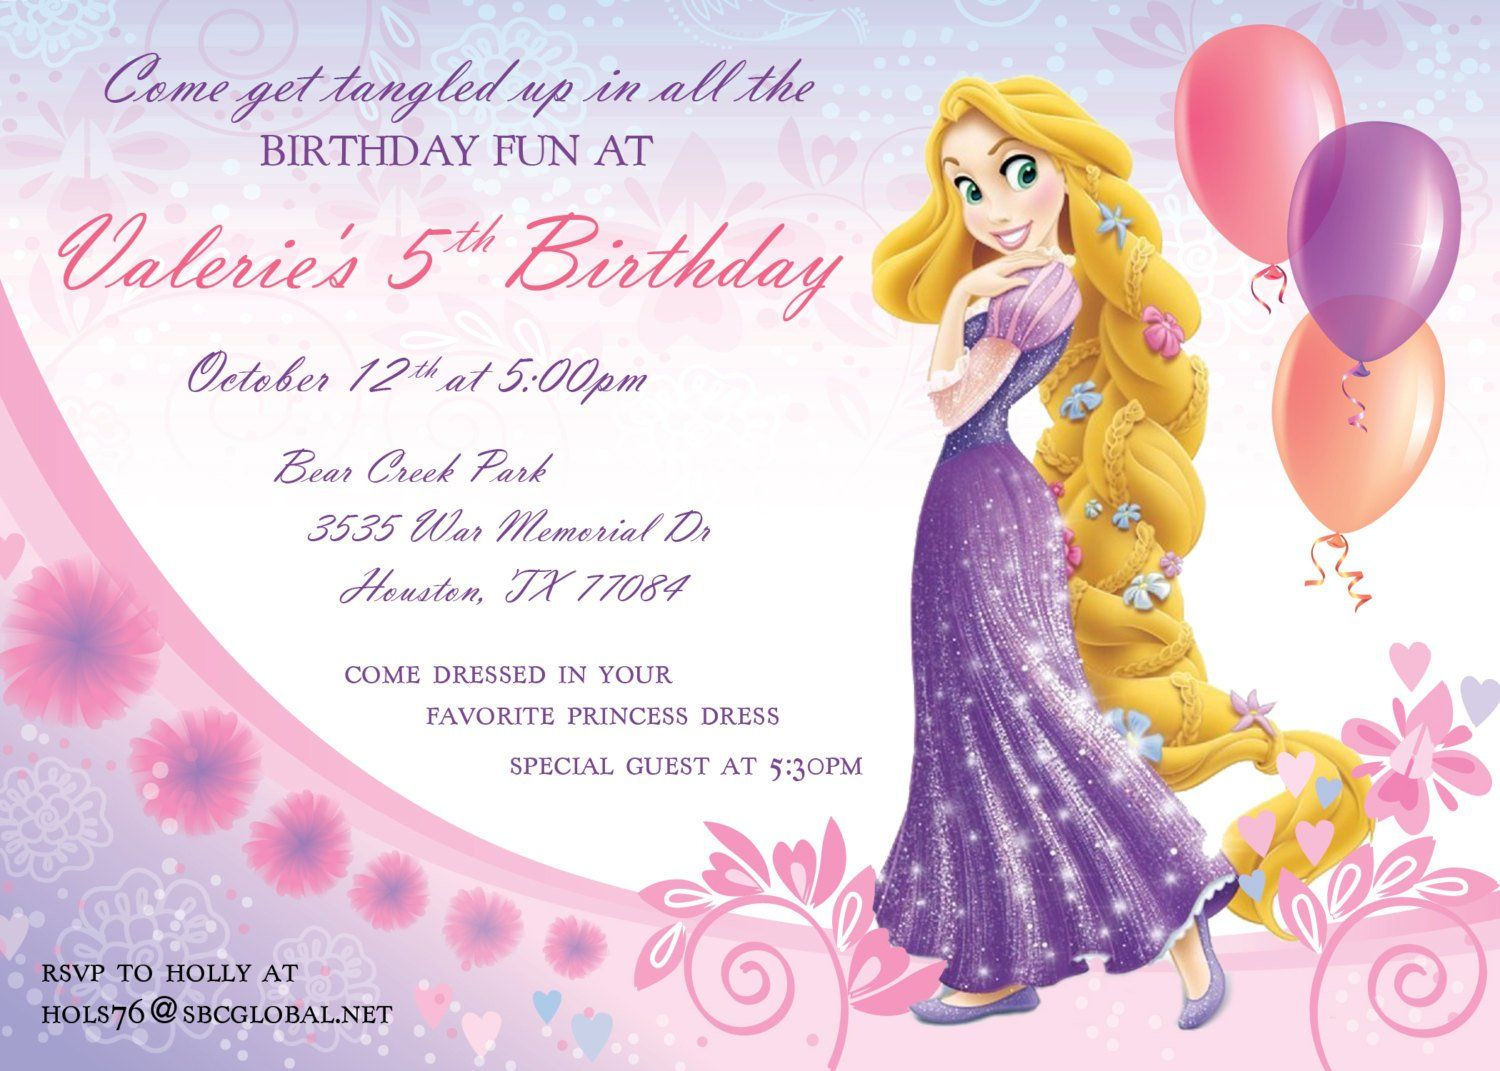 Rapunzel Invitation Template A Girly Birthday Party Invitation Card Design Rapunzel Birthday Invitation Girly Birthday Party Invitations Girly Birthday Party